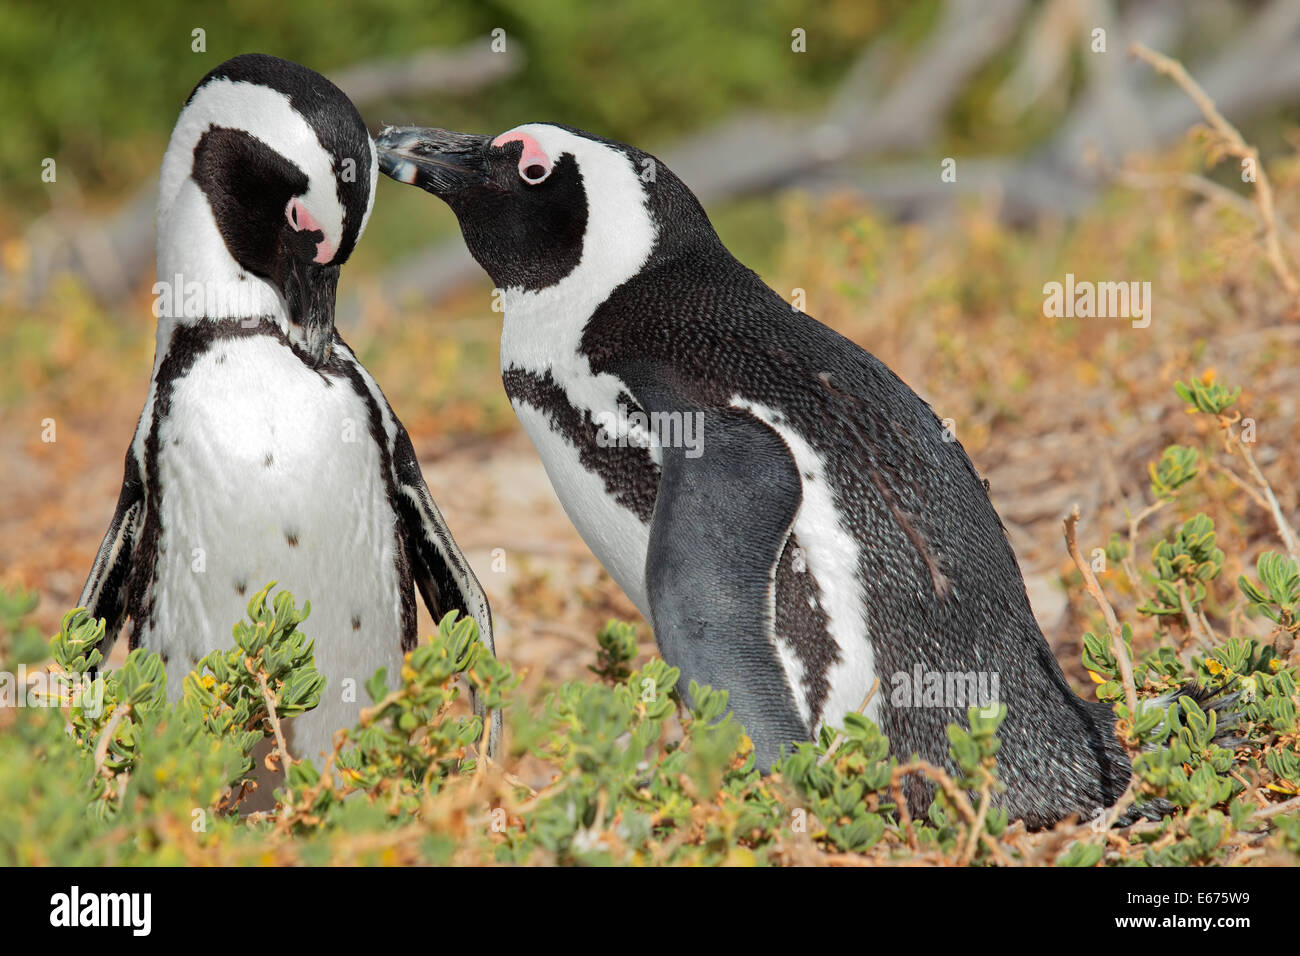 Breeding pair of African penguins (Spheniscus demersus), Western Cape, South Africa - Stock Image